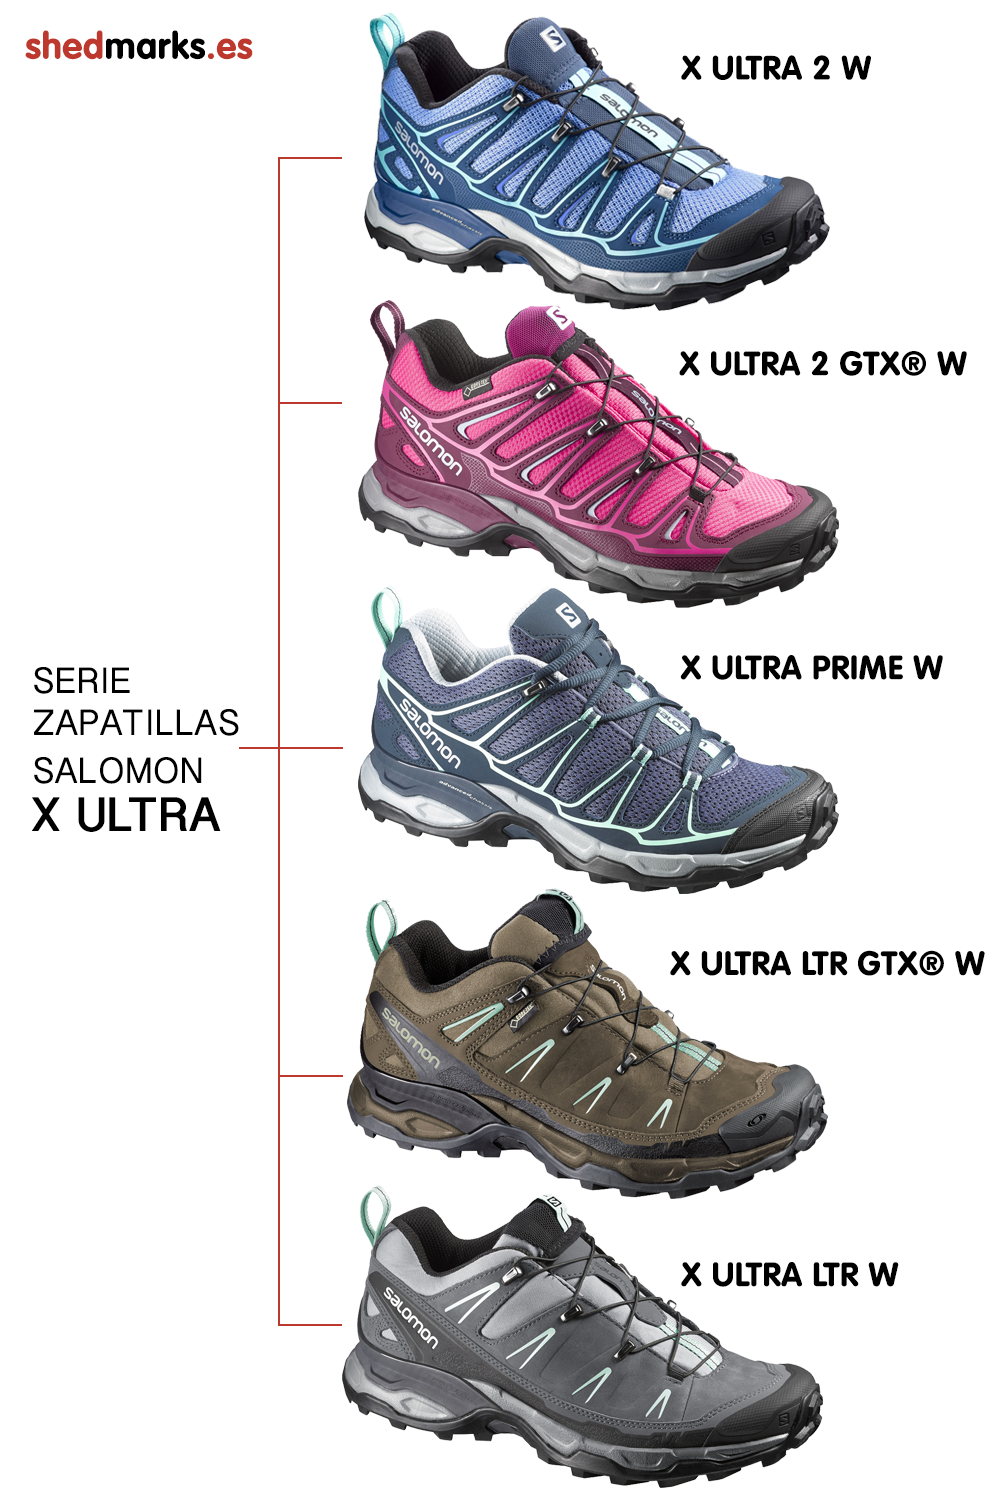 Comparativas zapatillas Salomon Serie X Ultra 2 http://www ...